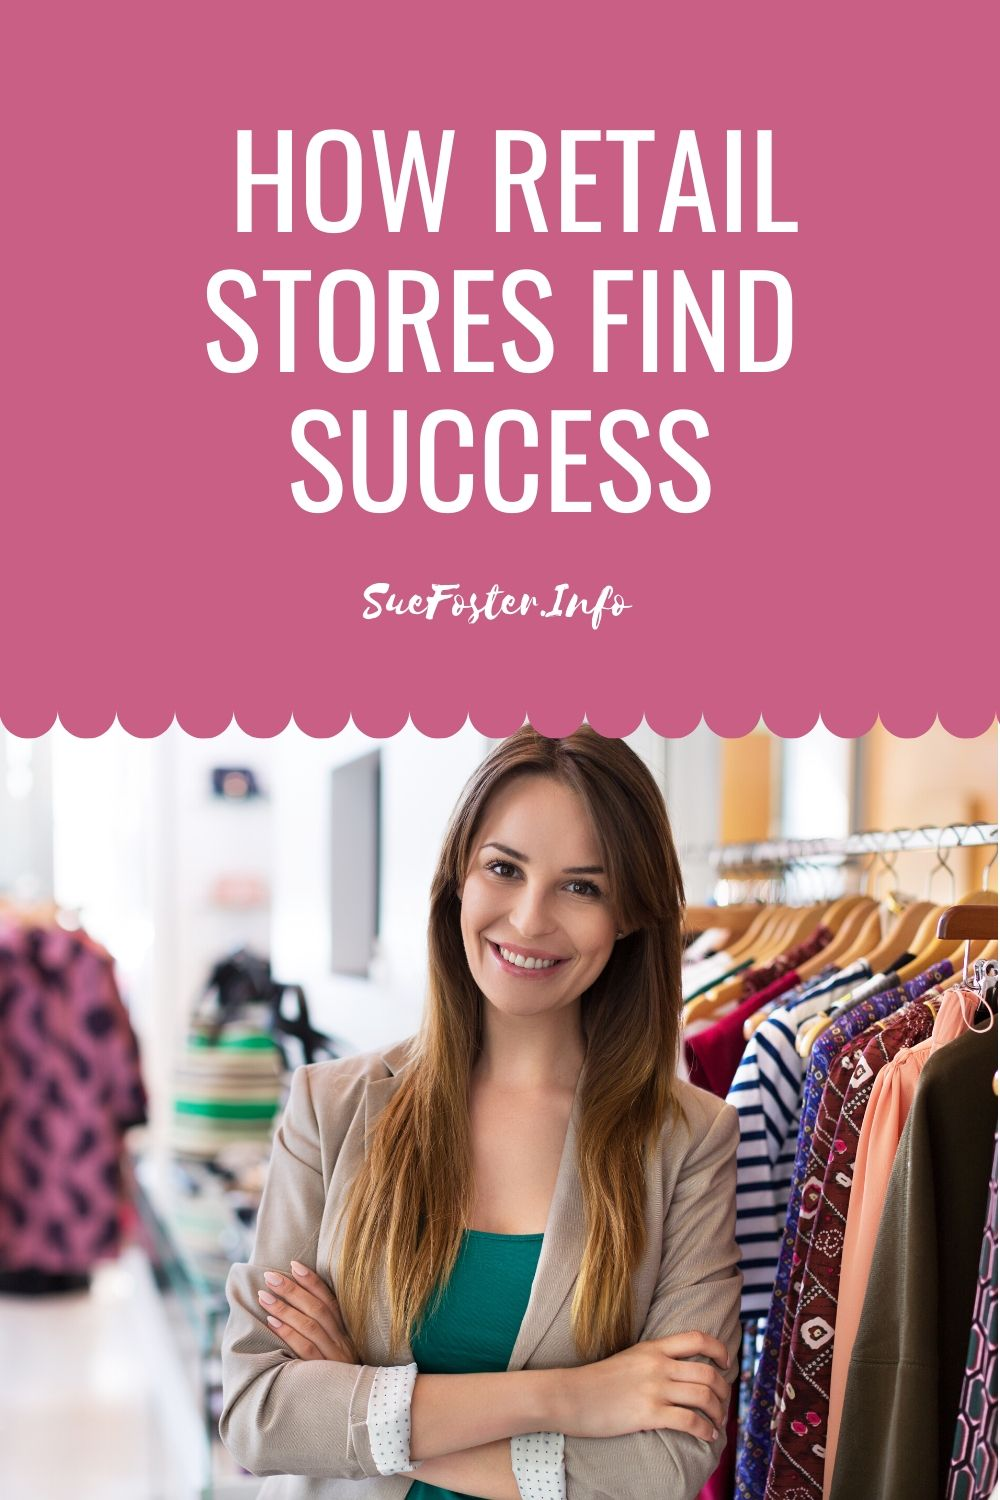 Let's take a look at some of the ways in which retail stores find success for themselves.